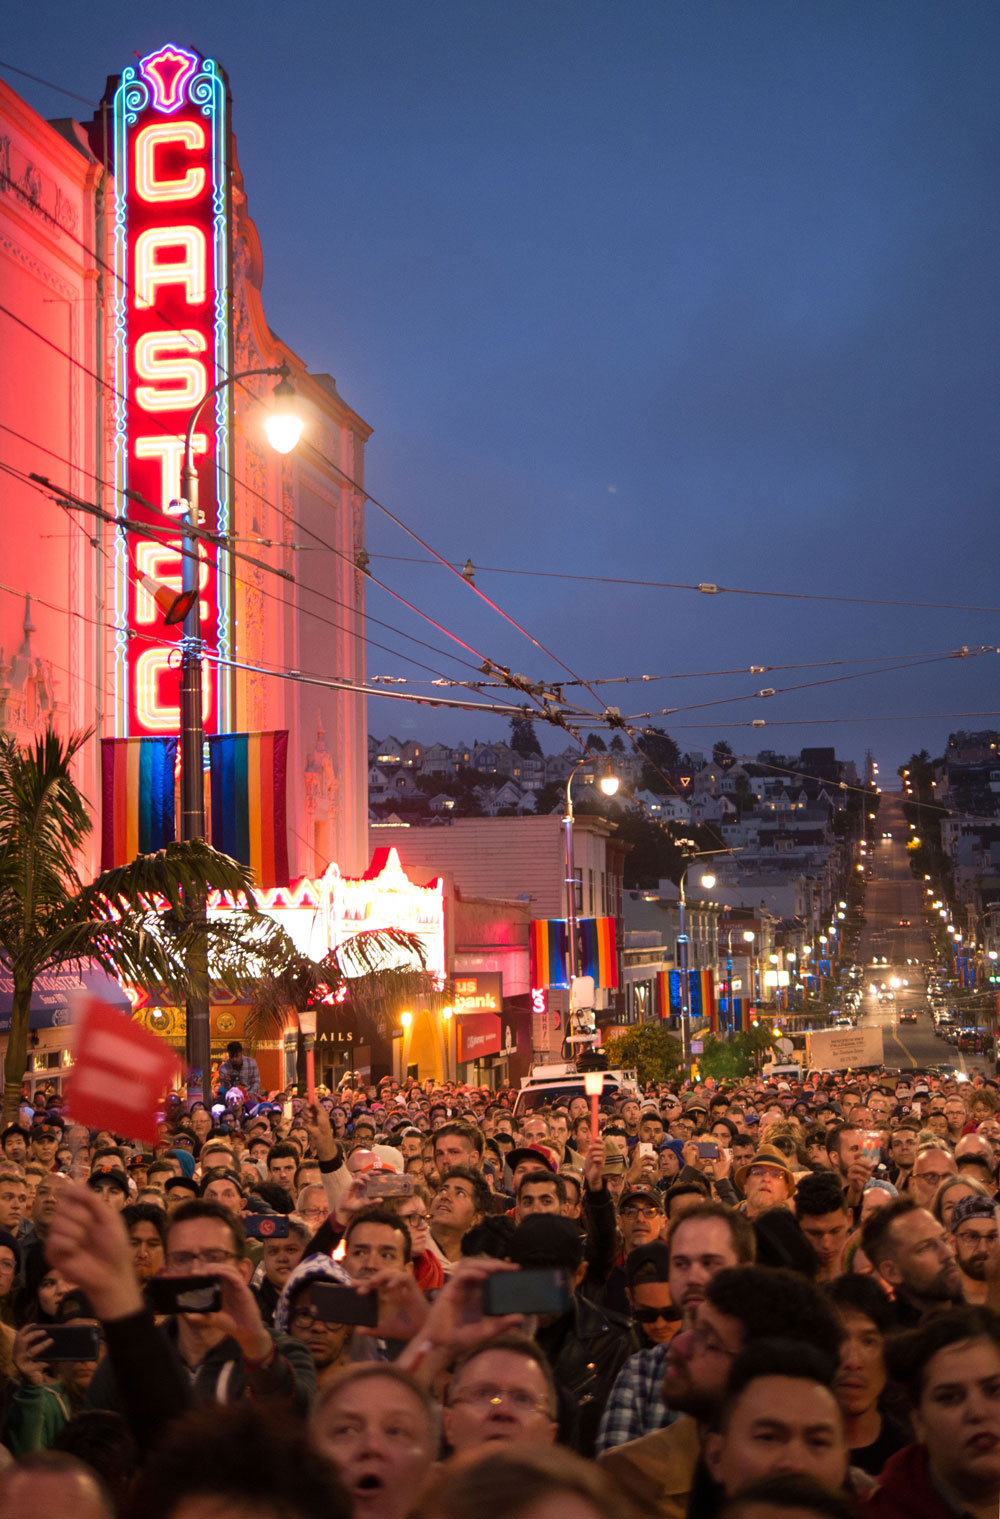 As the speakers went on and the crowd grew, darkness began to fall and the Castro filled with candlelight. Photo by David Schnur.